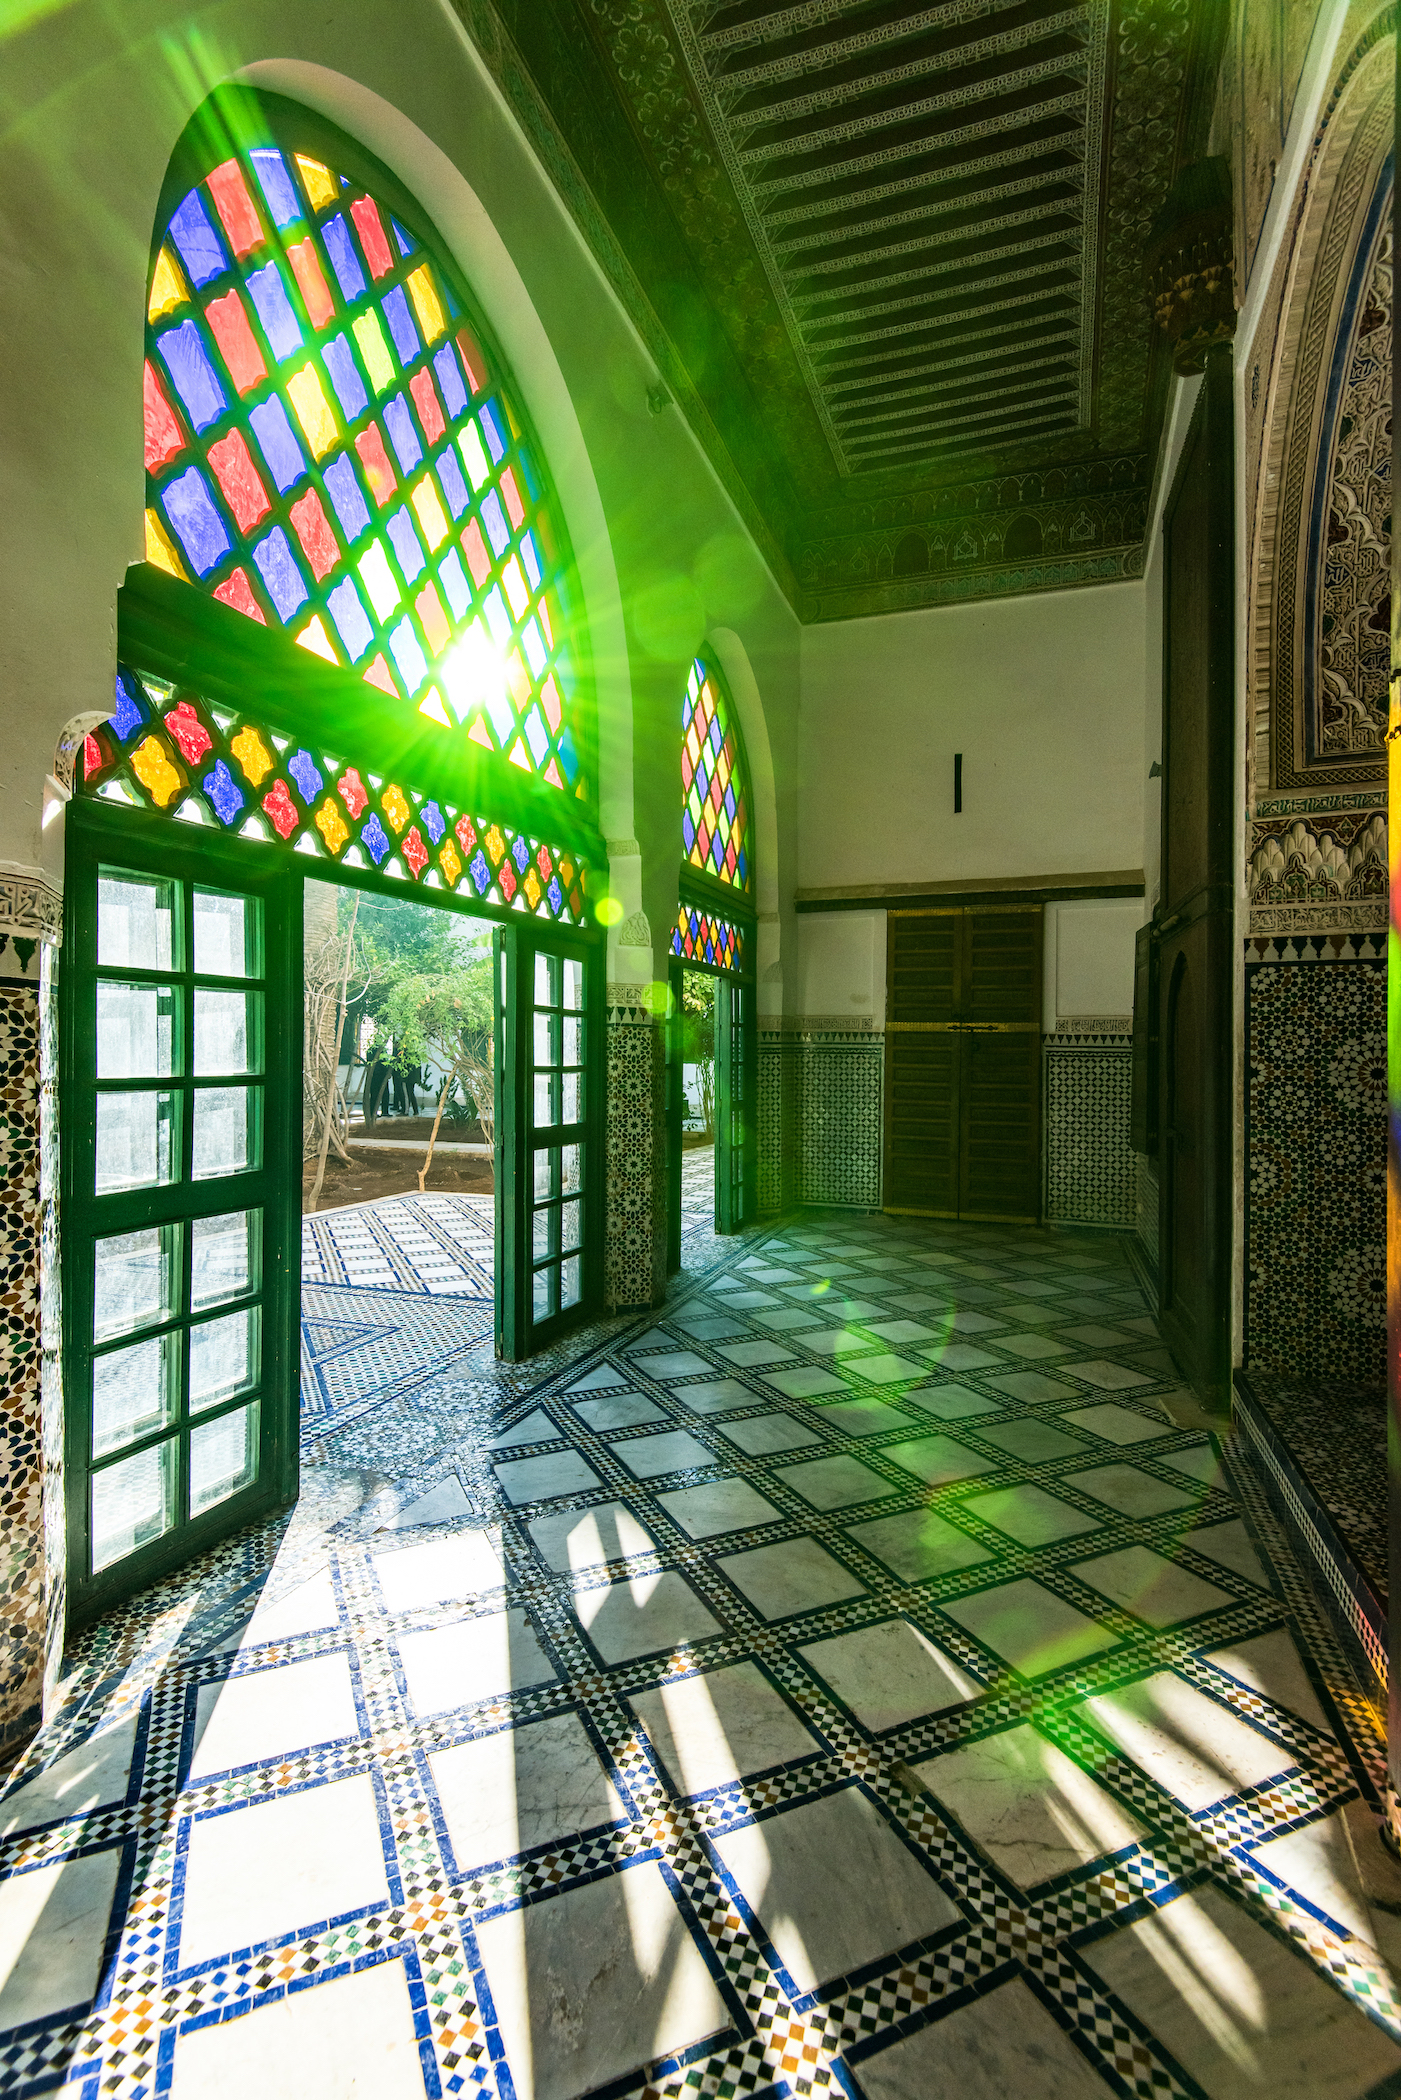 Interior of the Bahia Palace in Marrakesh, Morocco